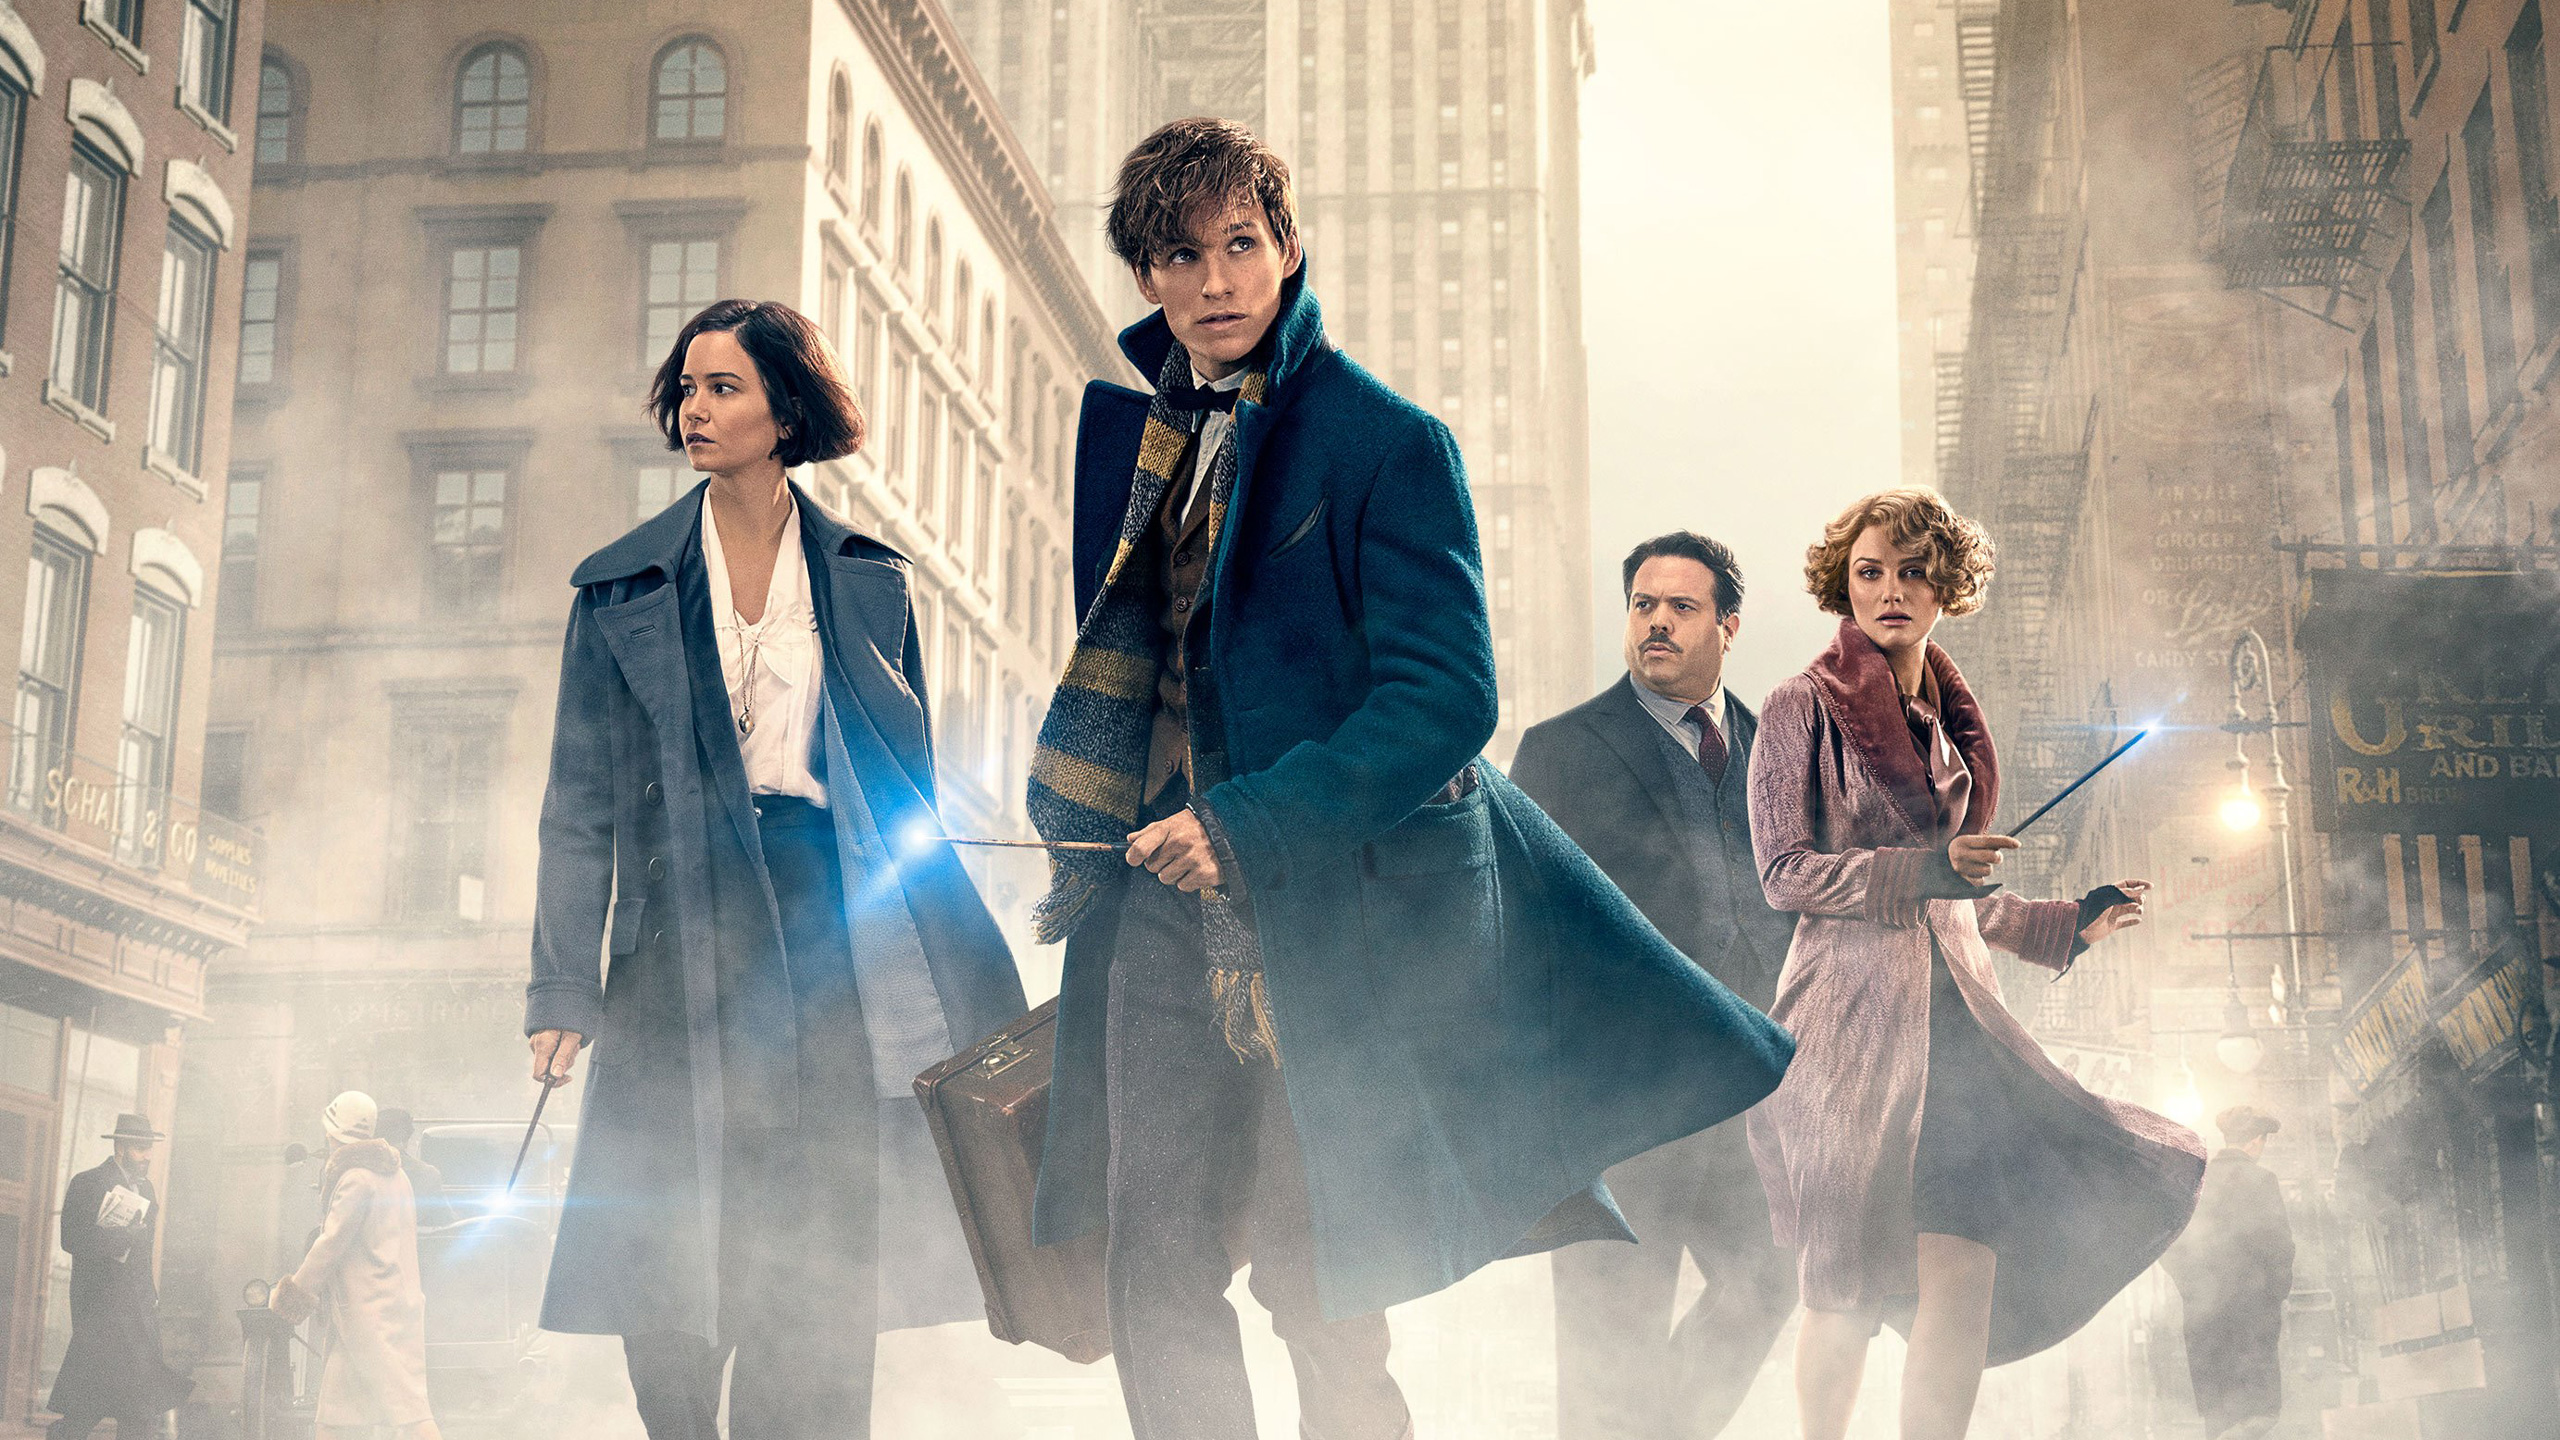 Fantastic Beasts and Where to Find Them wallpaper 1 2560x1440